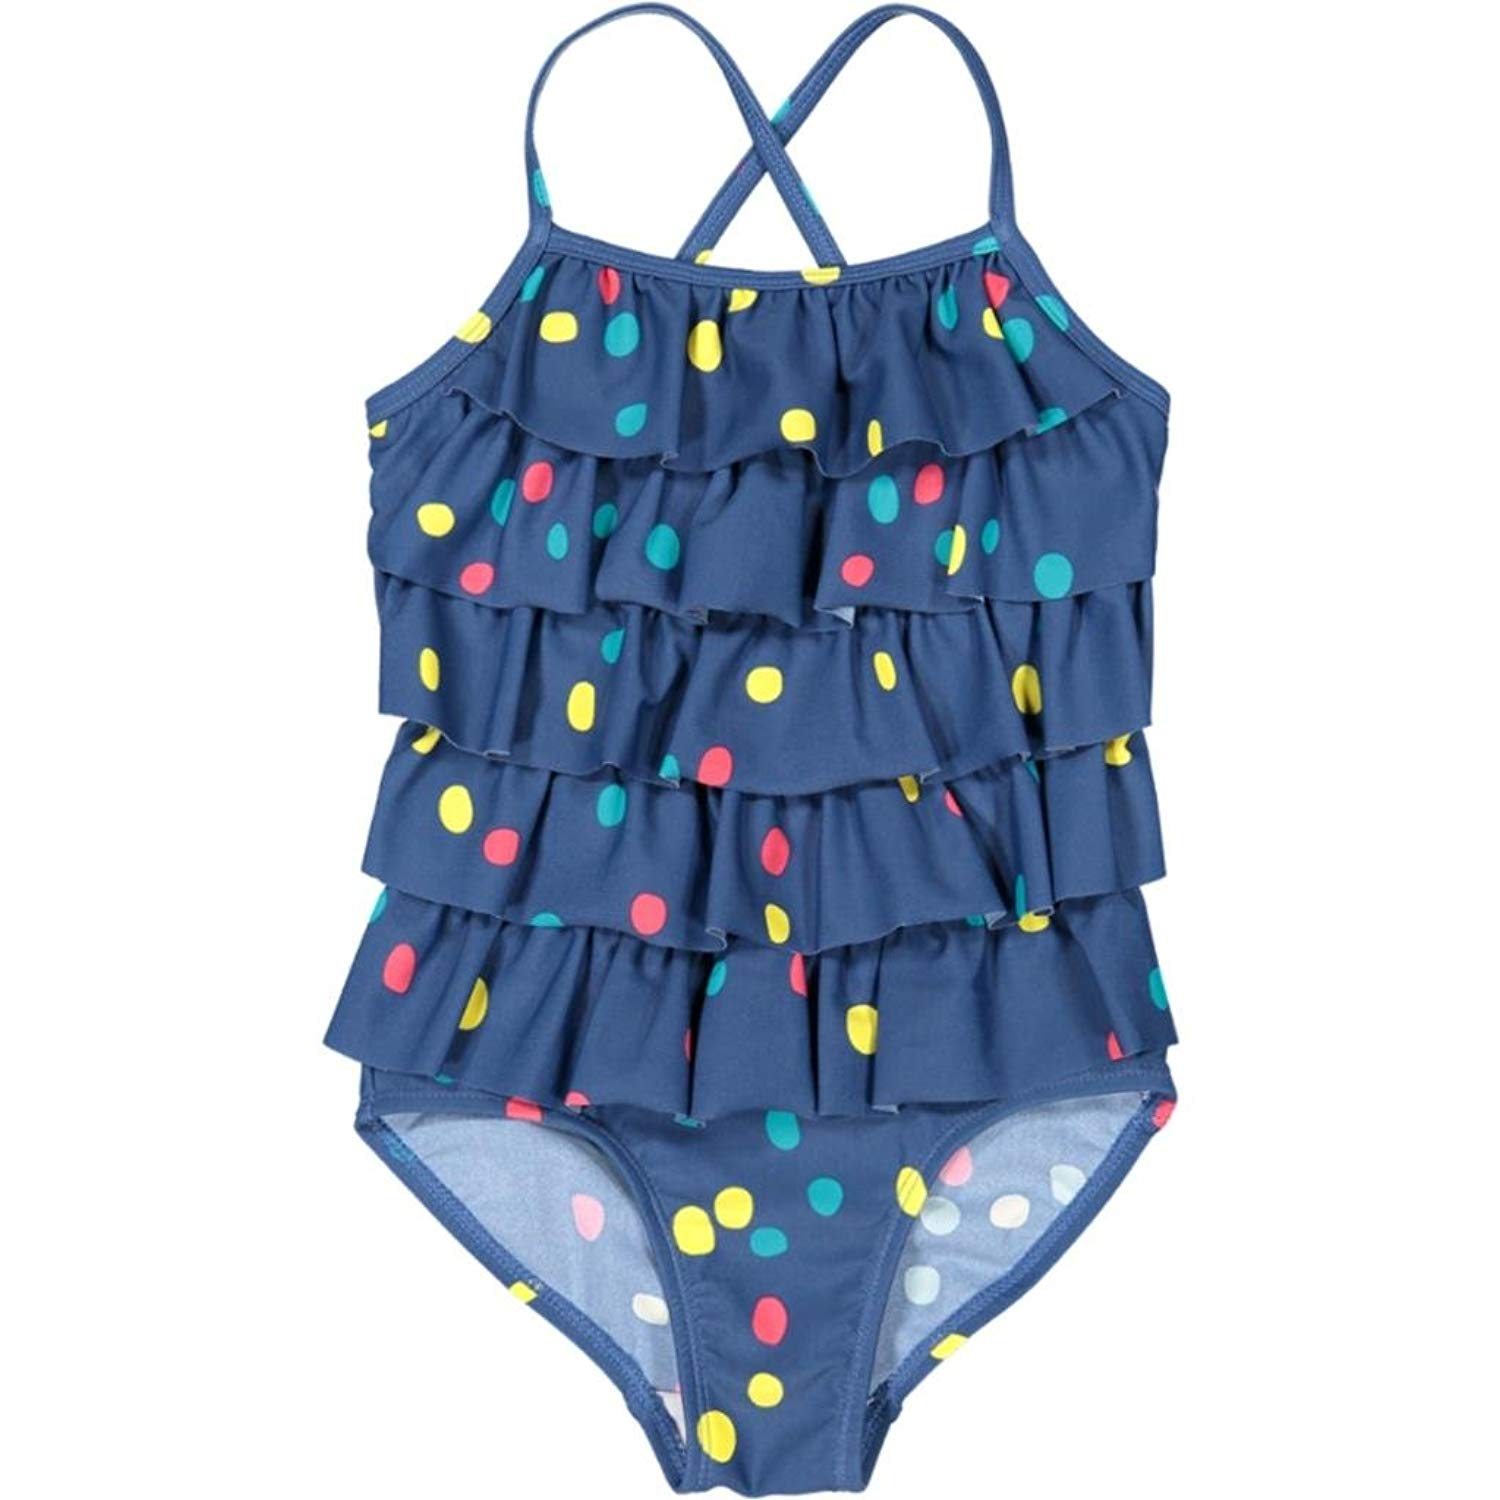 9947aa2ace69f Cheap Tiered Swimsuit, find Tiered Swimsuit deals on line at Alibaba.com